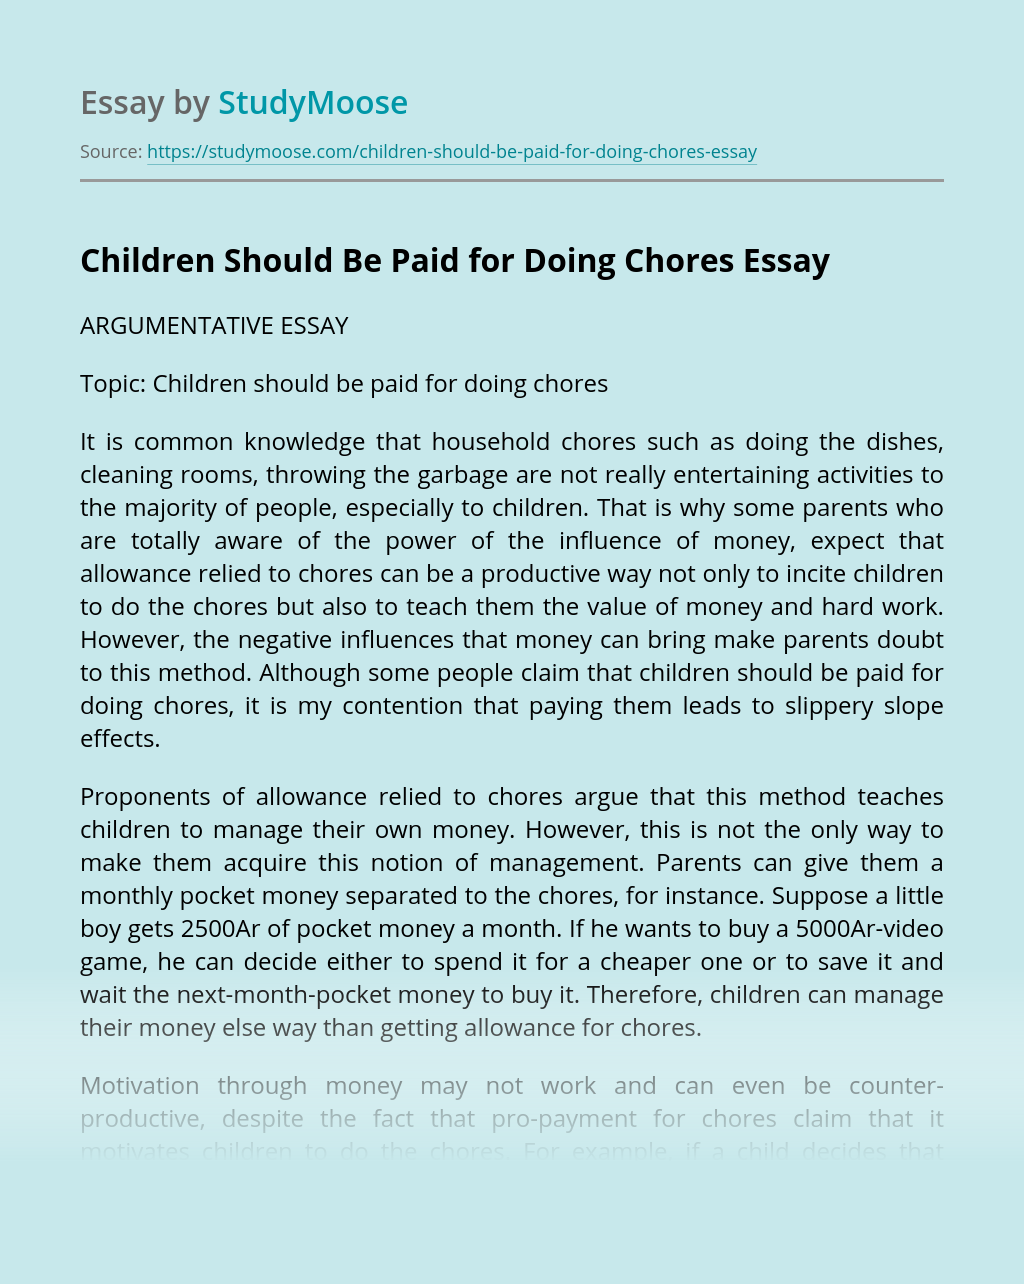 Children Should Be Paid for Doing Chores